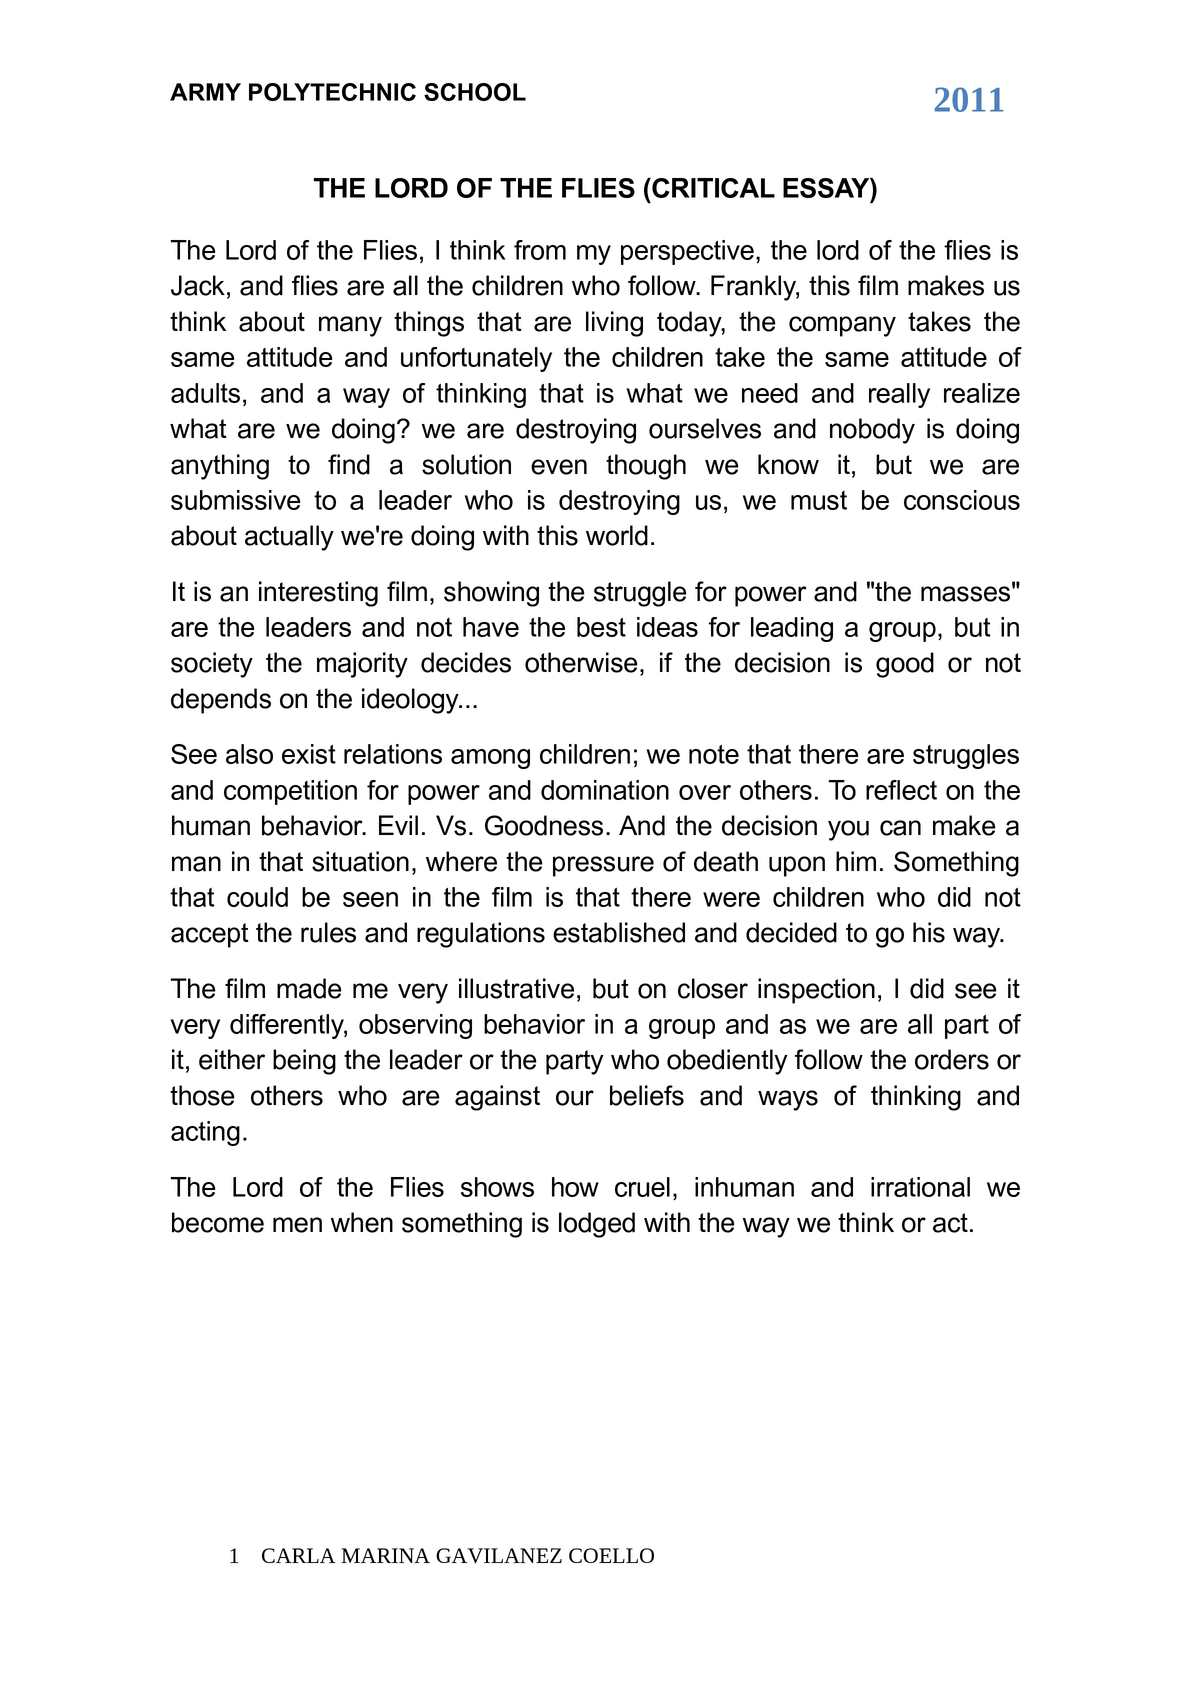 lord of the flies symbolism essay lord of the flies symbolism  lord of the flies power essay calamatilde131acirccopyo the lord of the flies critical essay